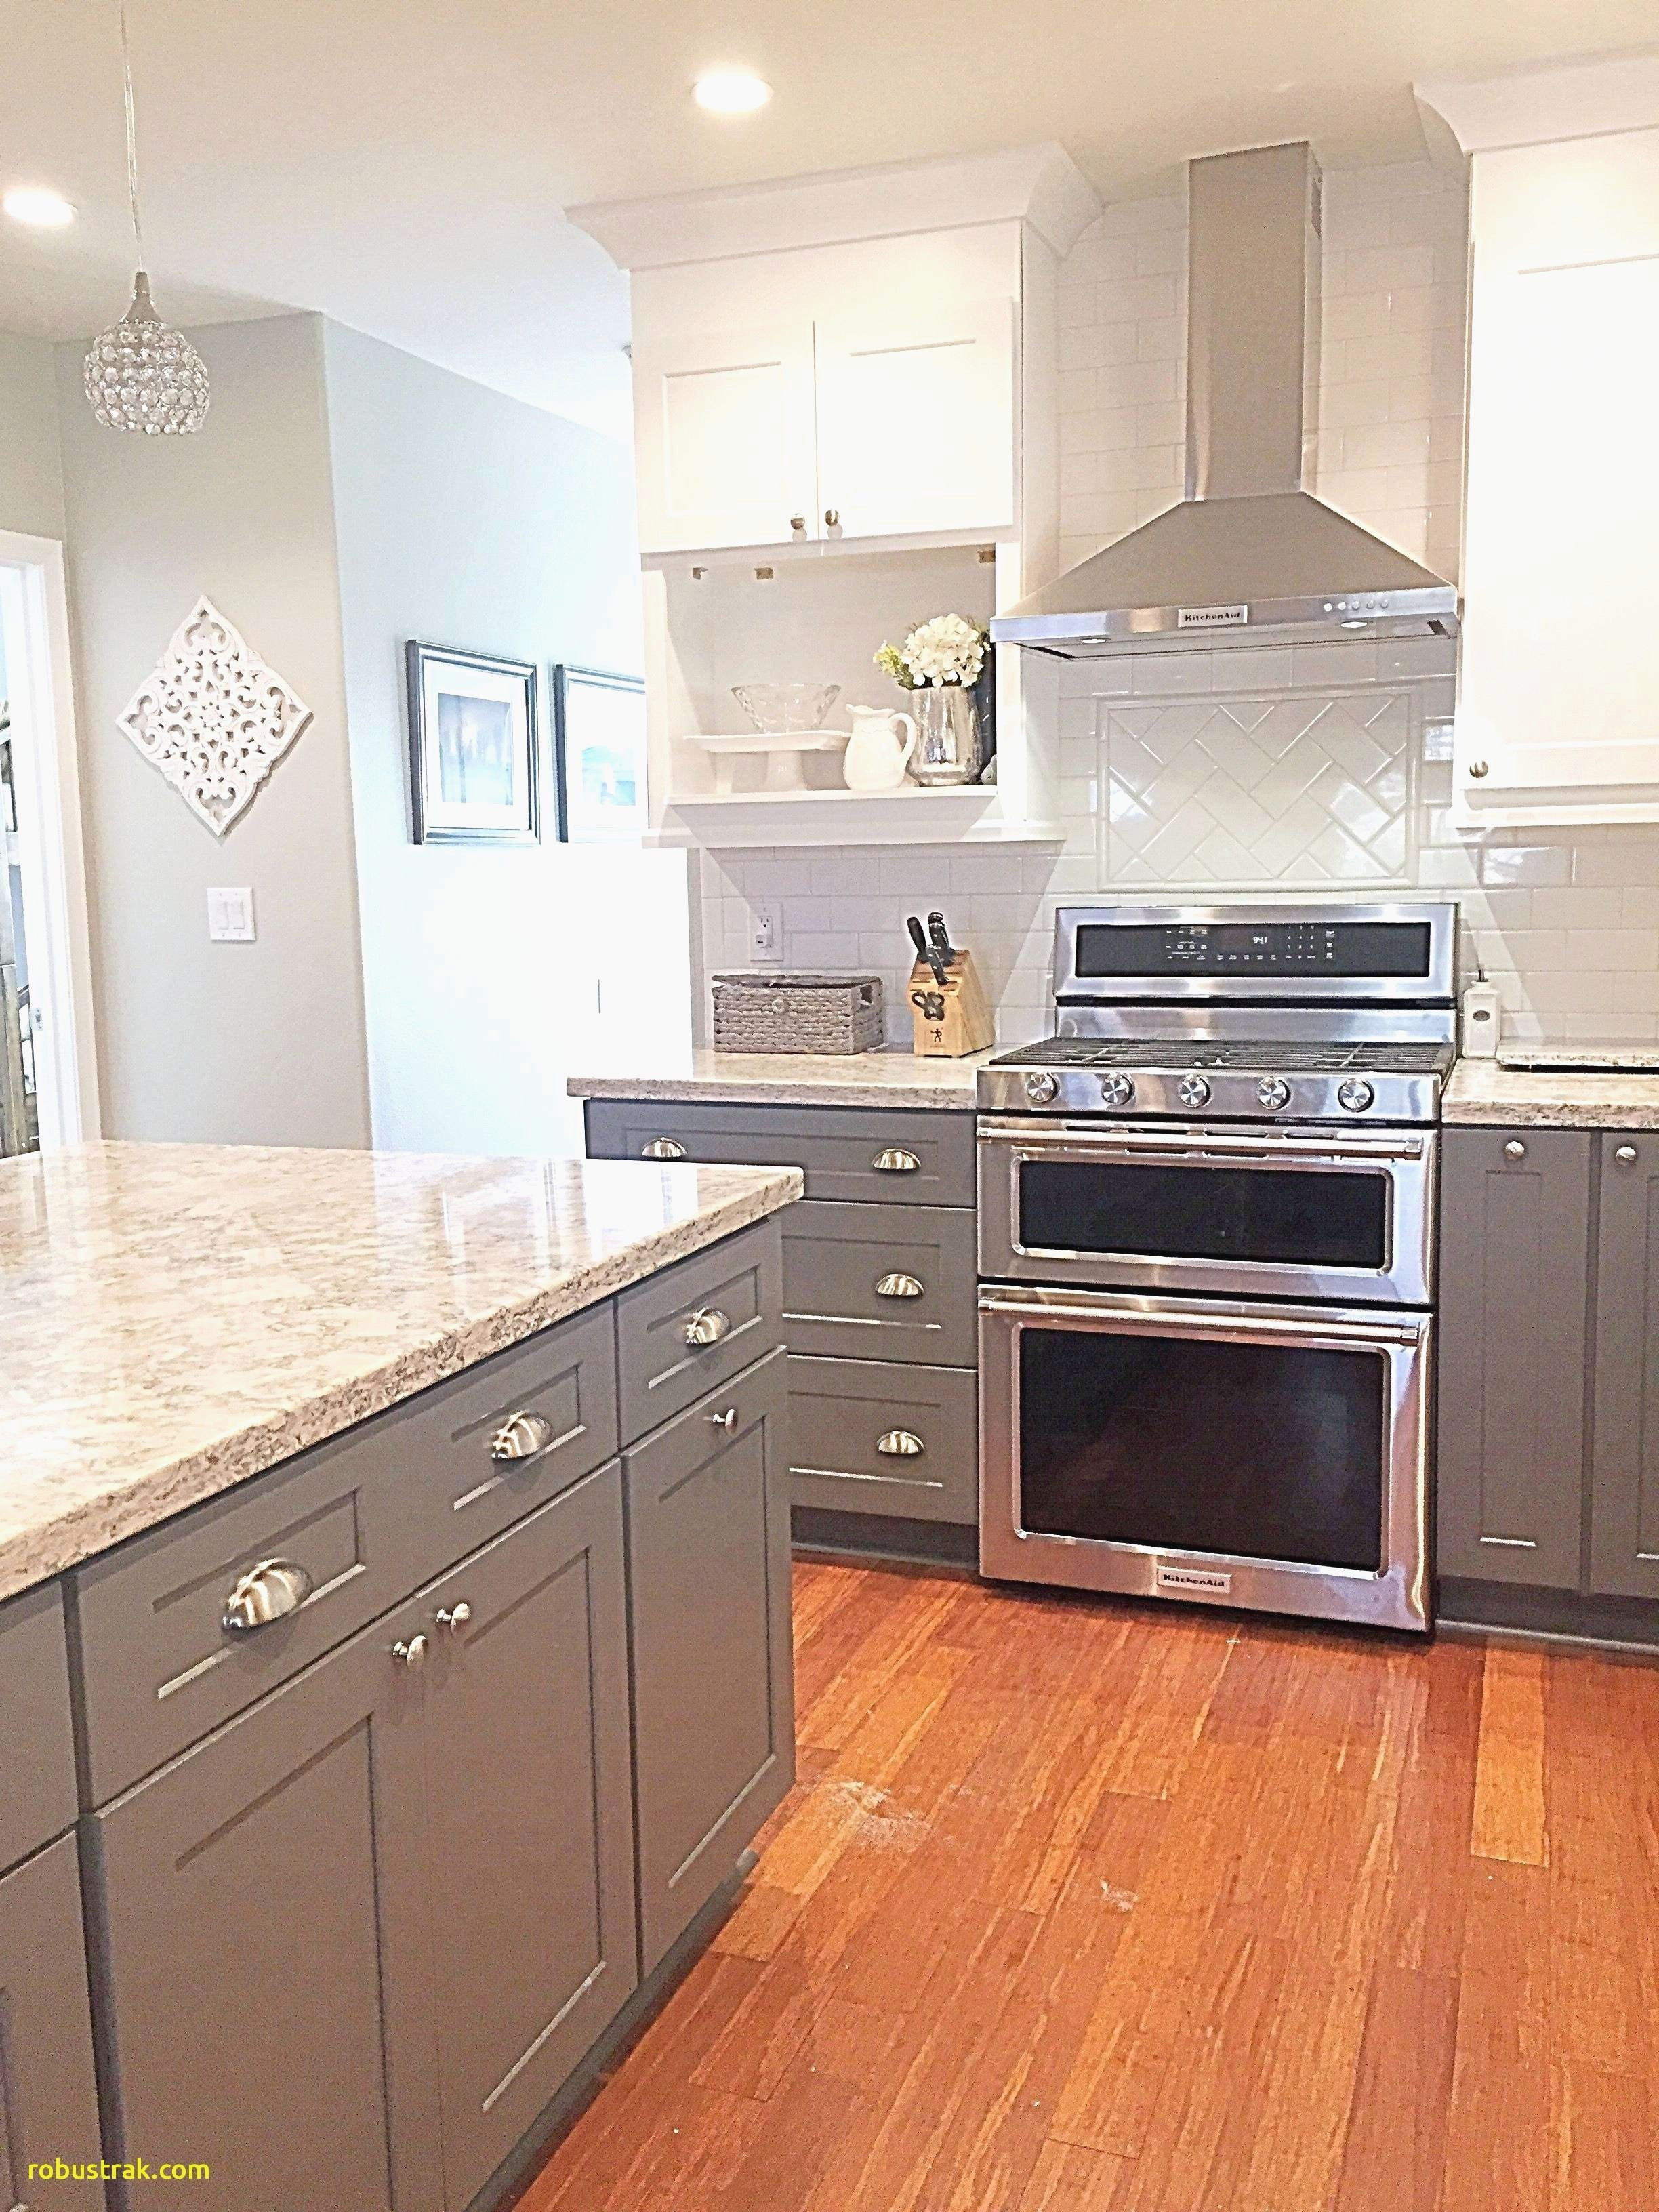 maple hardwood flooring grades of 14 new average cost for hardwood floors stock dizpos com pertaining to average cost for hardwood floors inspirational great popular how much does it cost to have kitchen